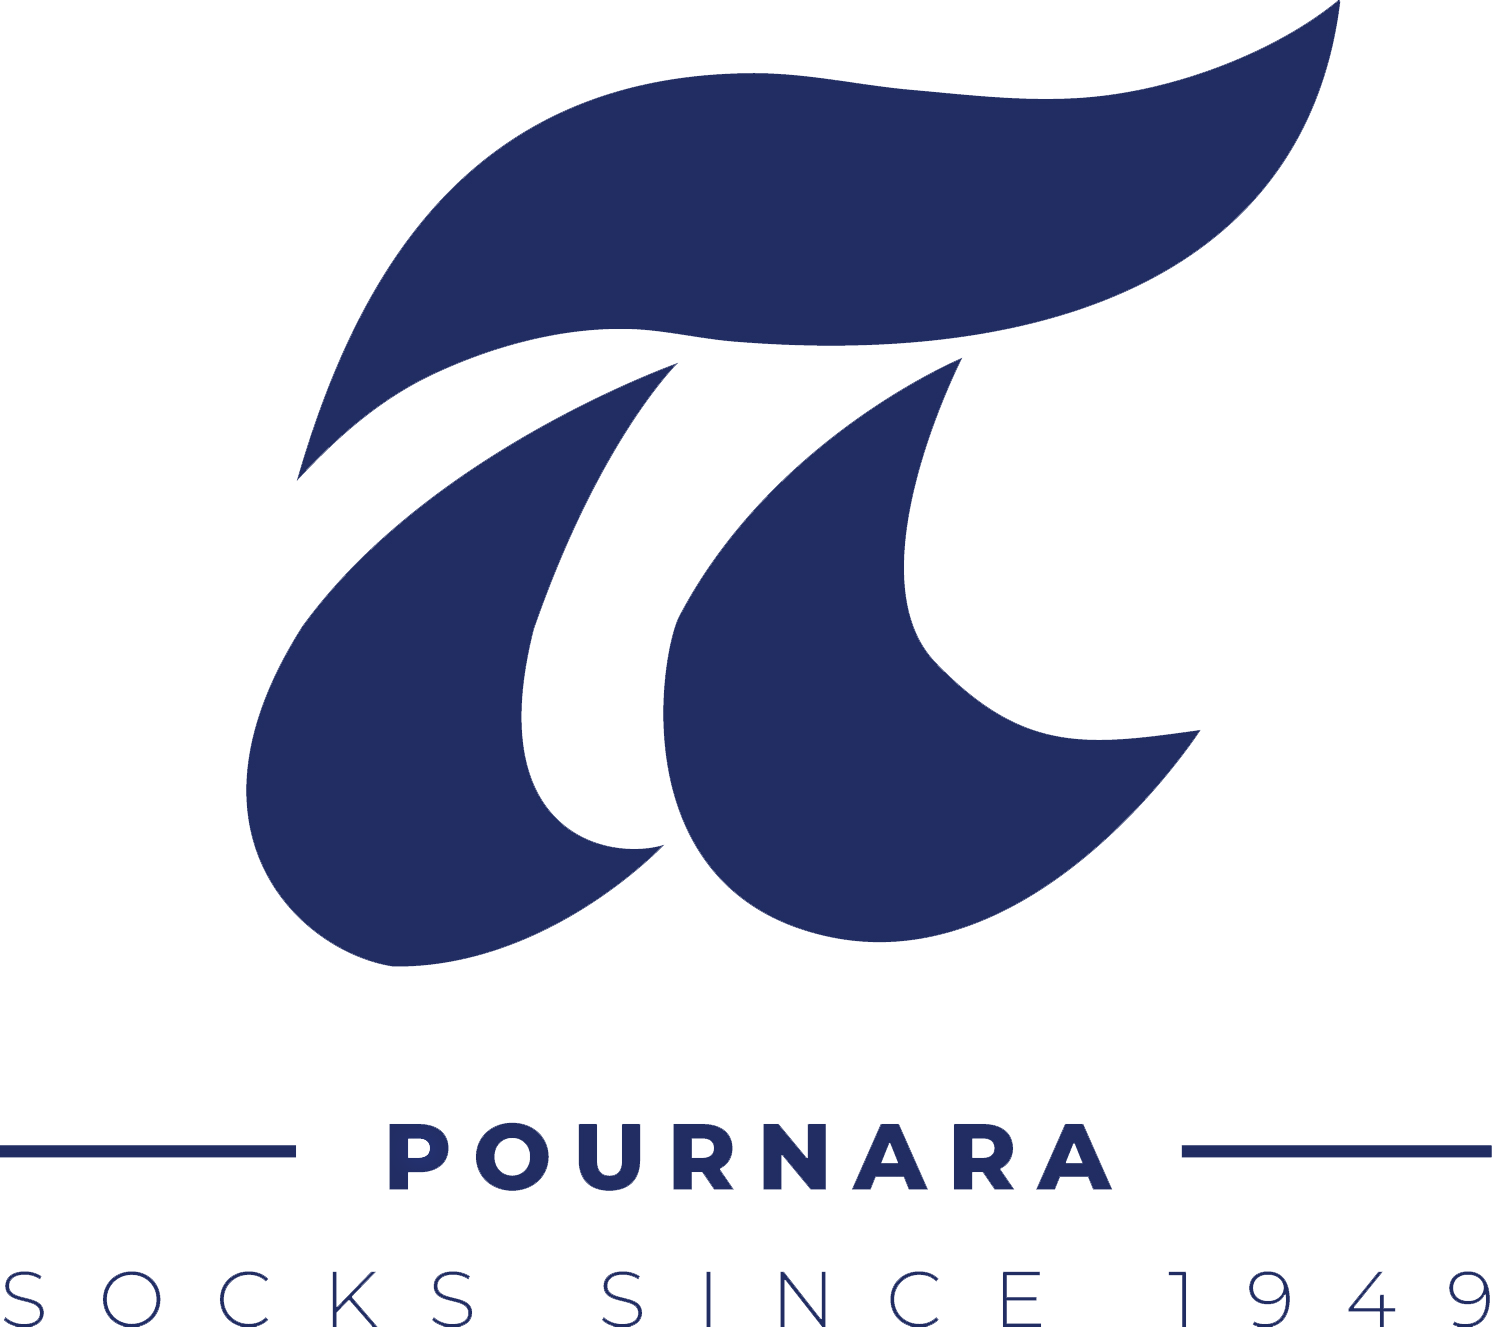 Pournara Socks